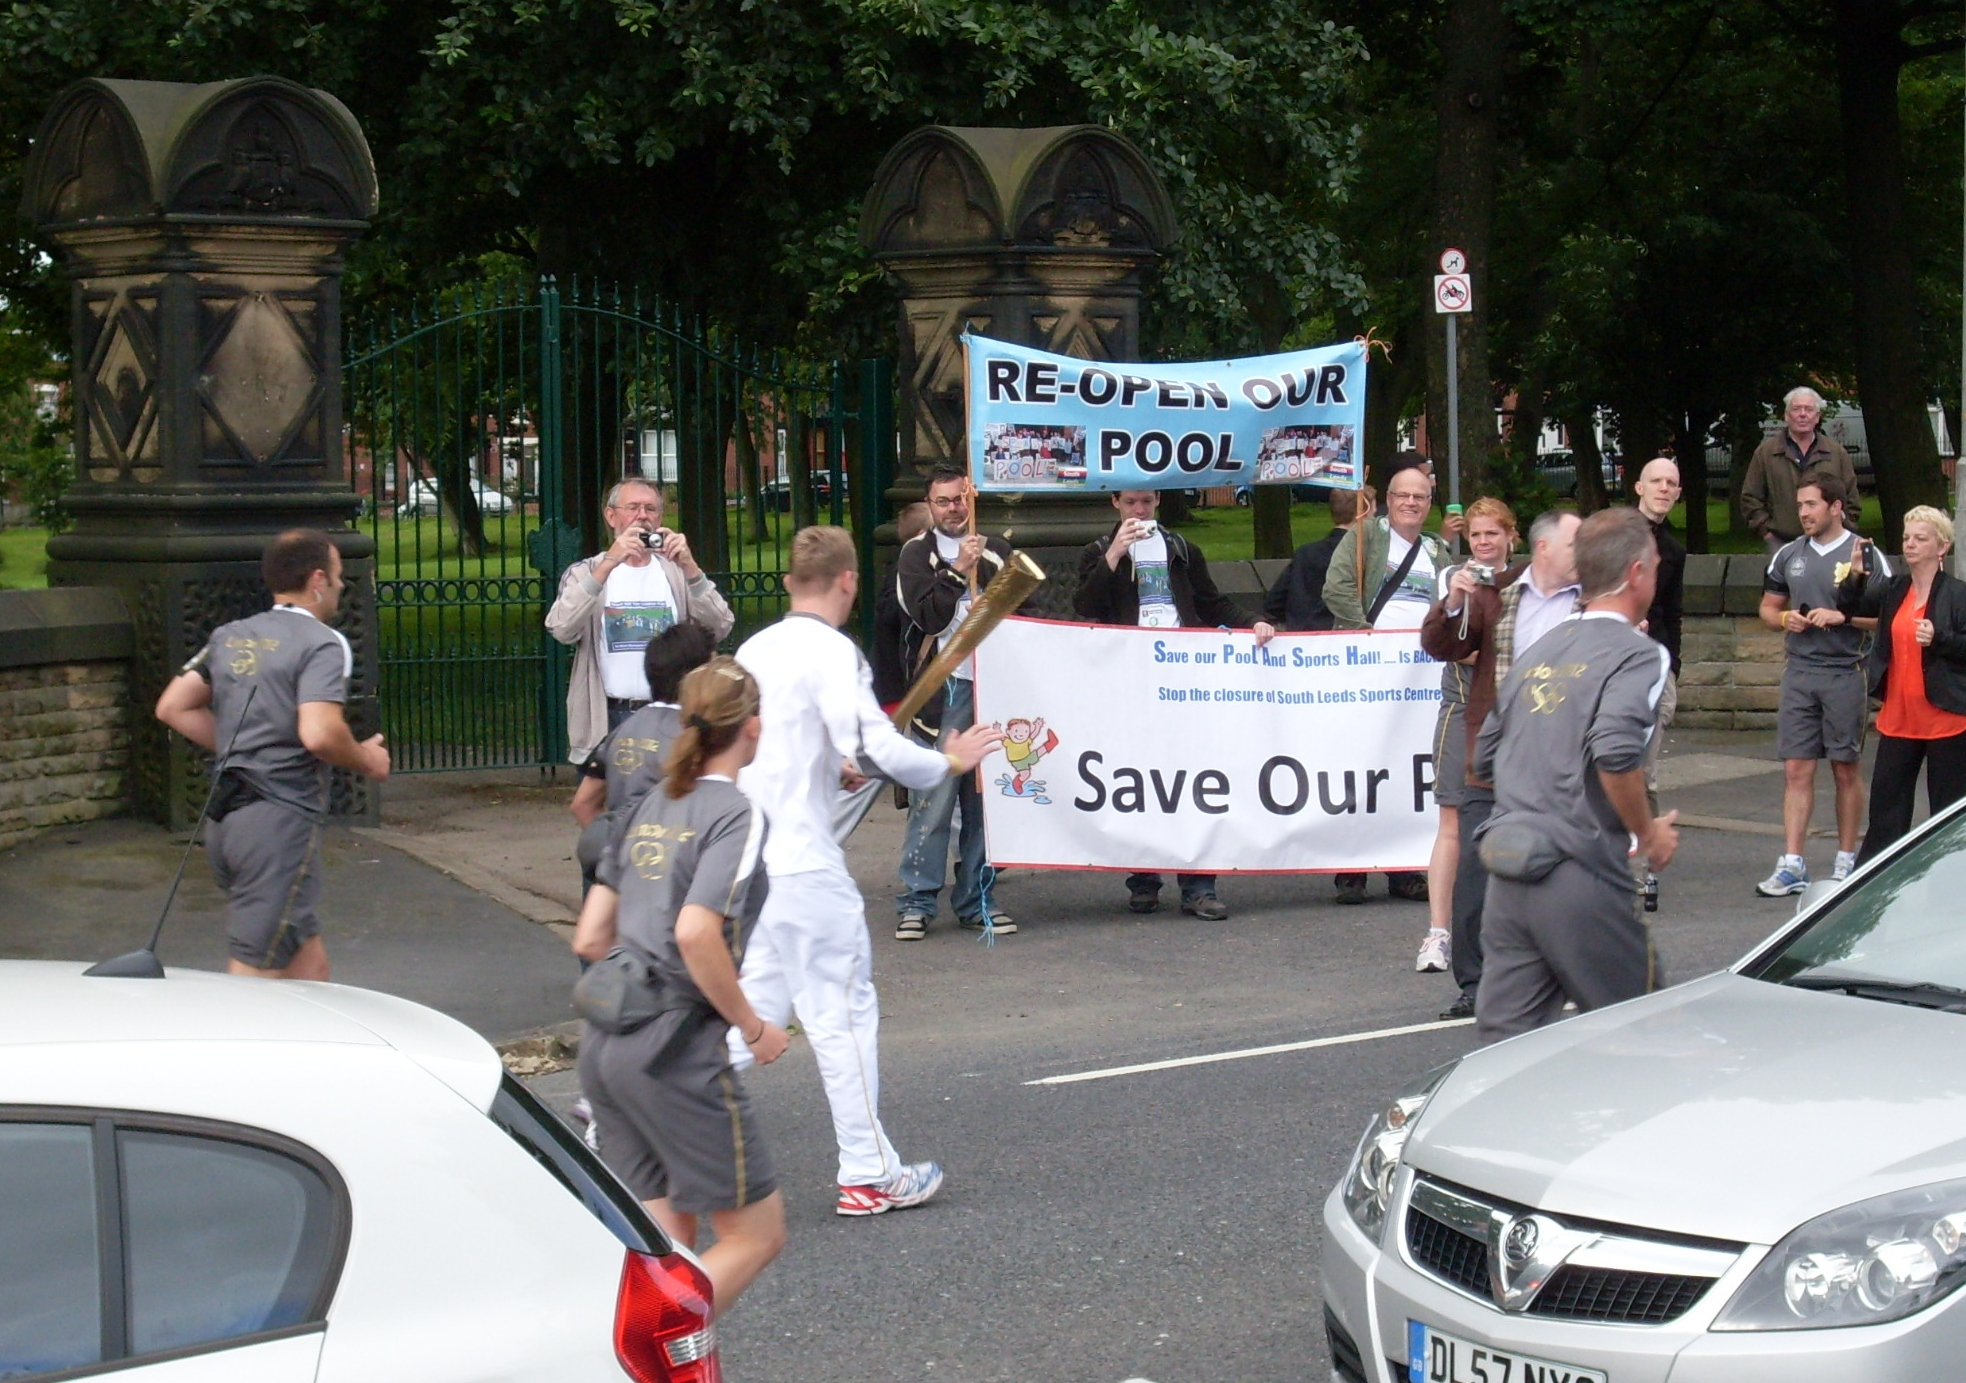 Olympic torch save our pool